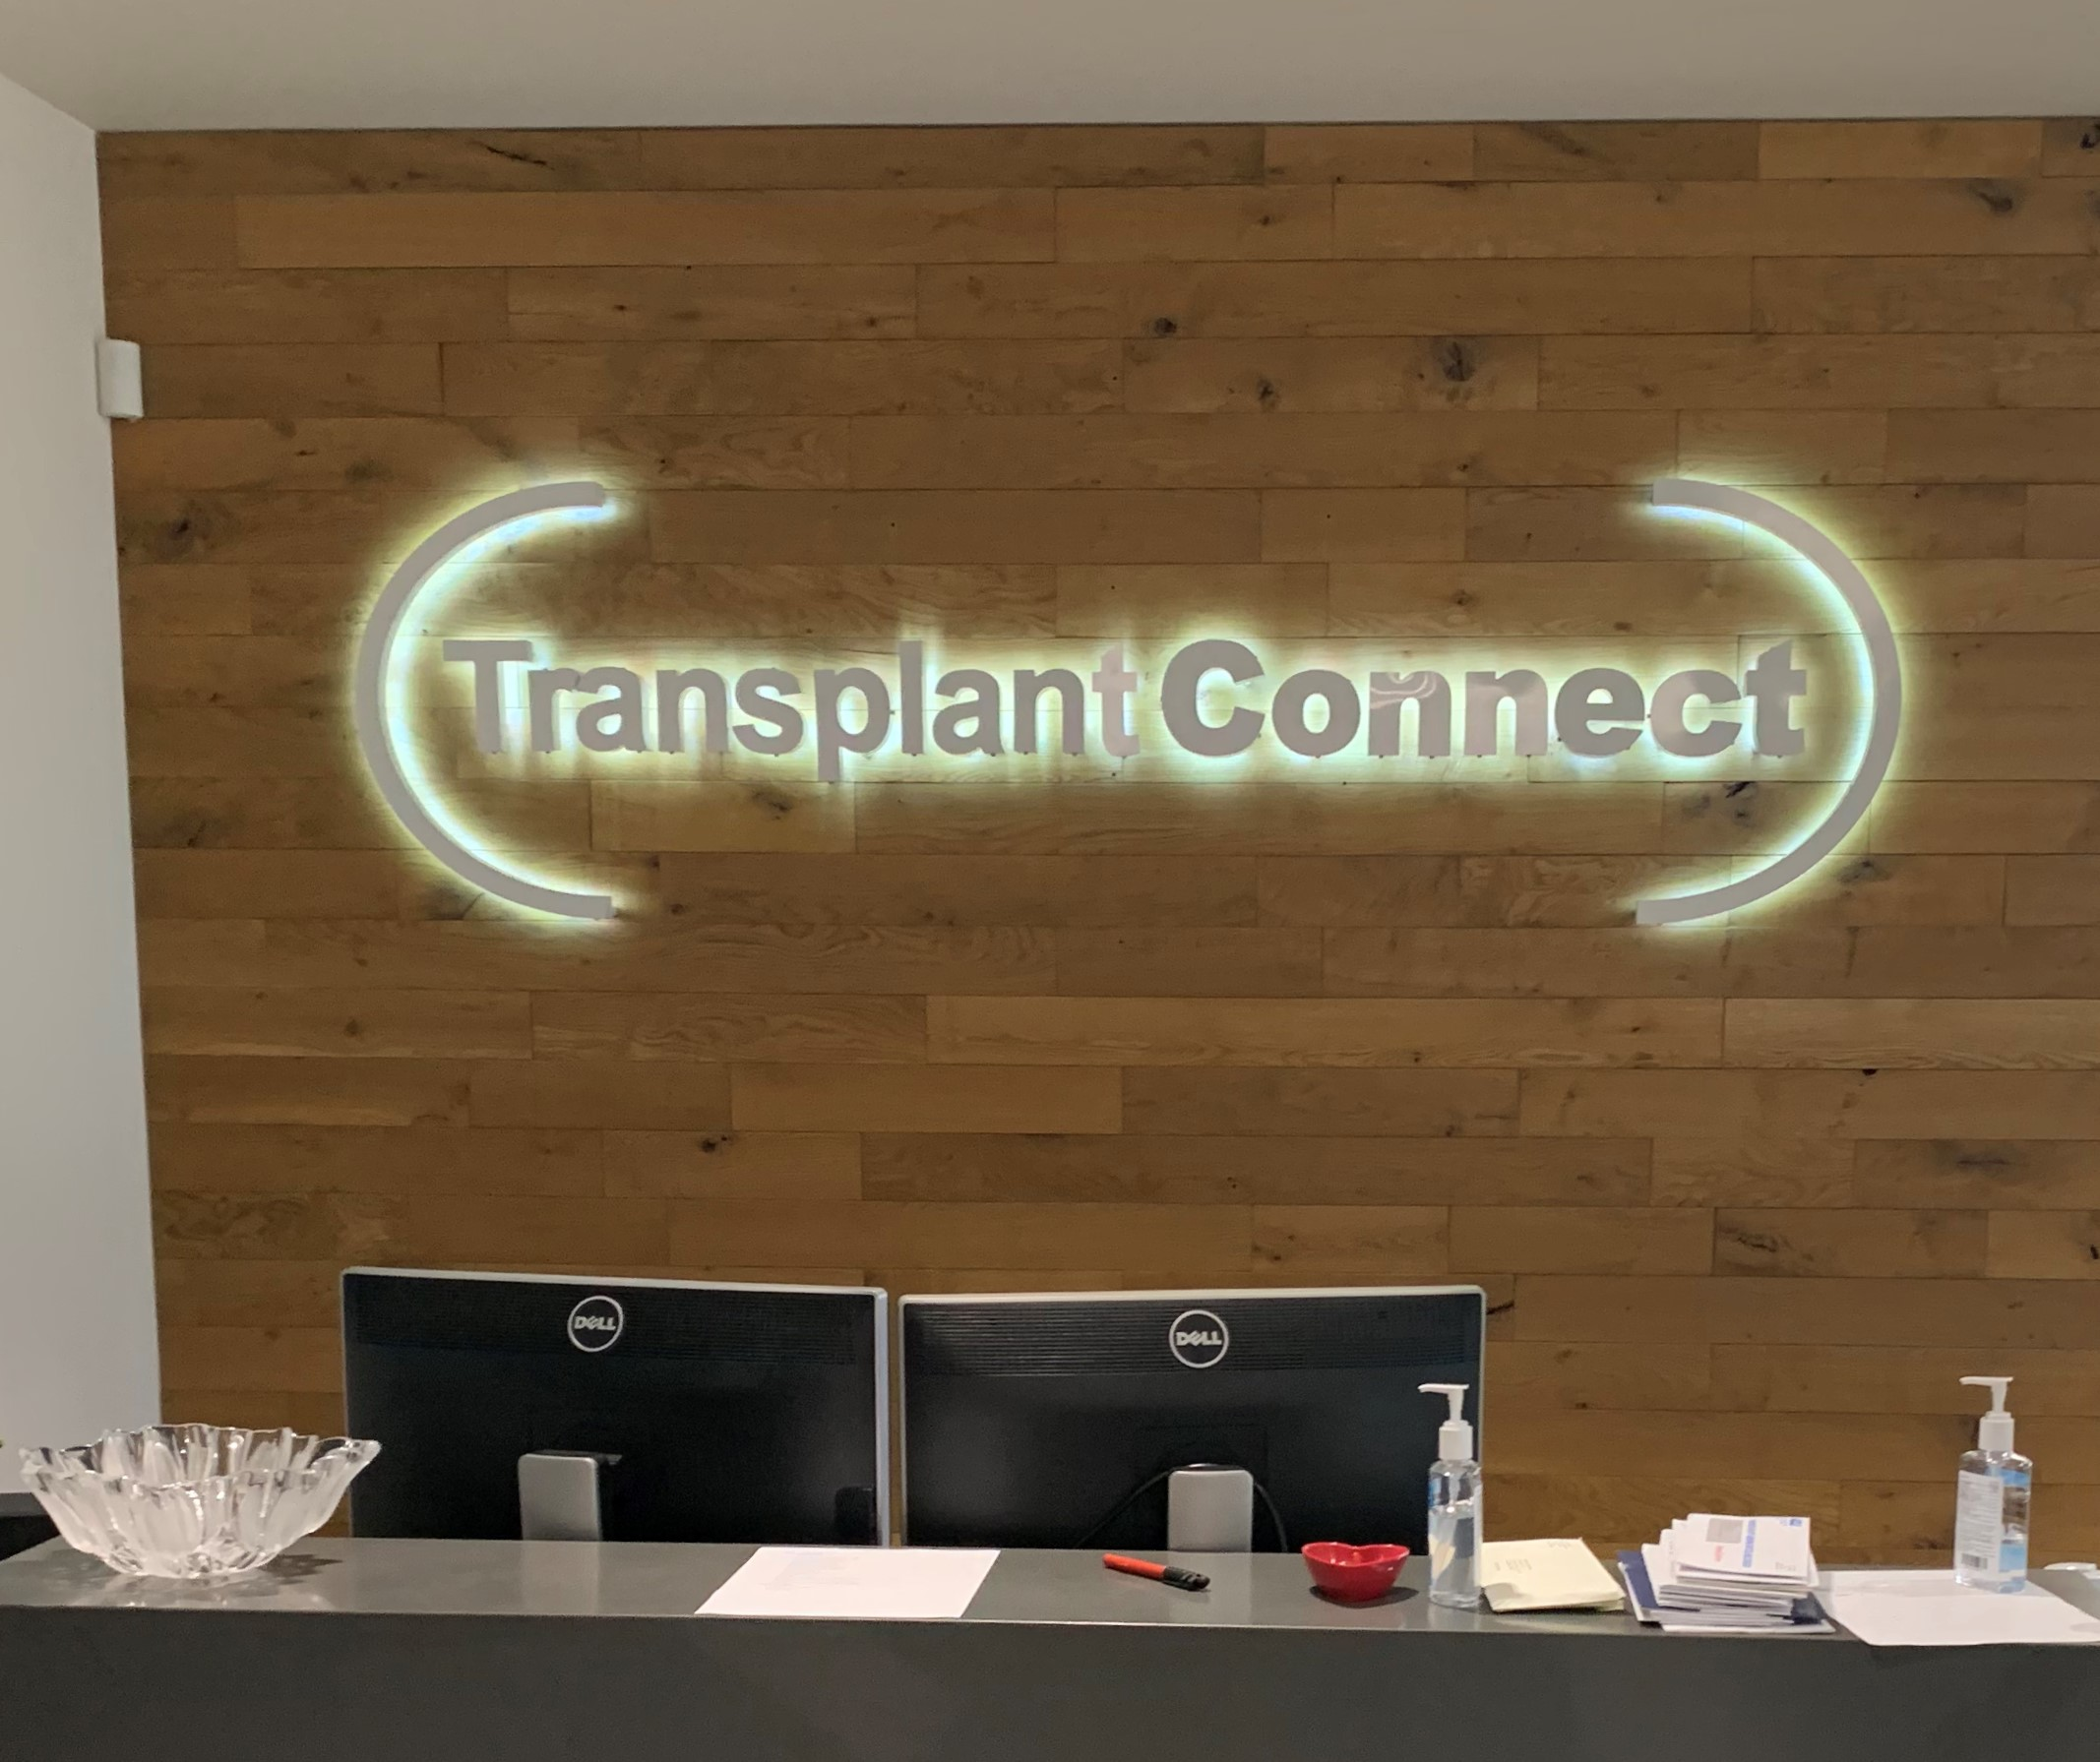 Our tech firm office lobby sign for Transplant Connect's Los Angeles facility, an eye-catching display that will enhance their workplace.